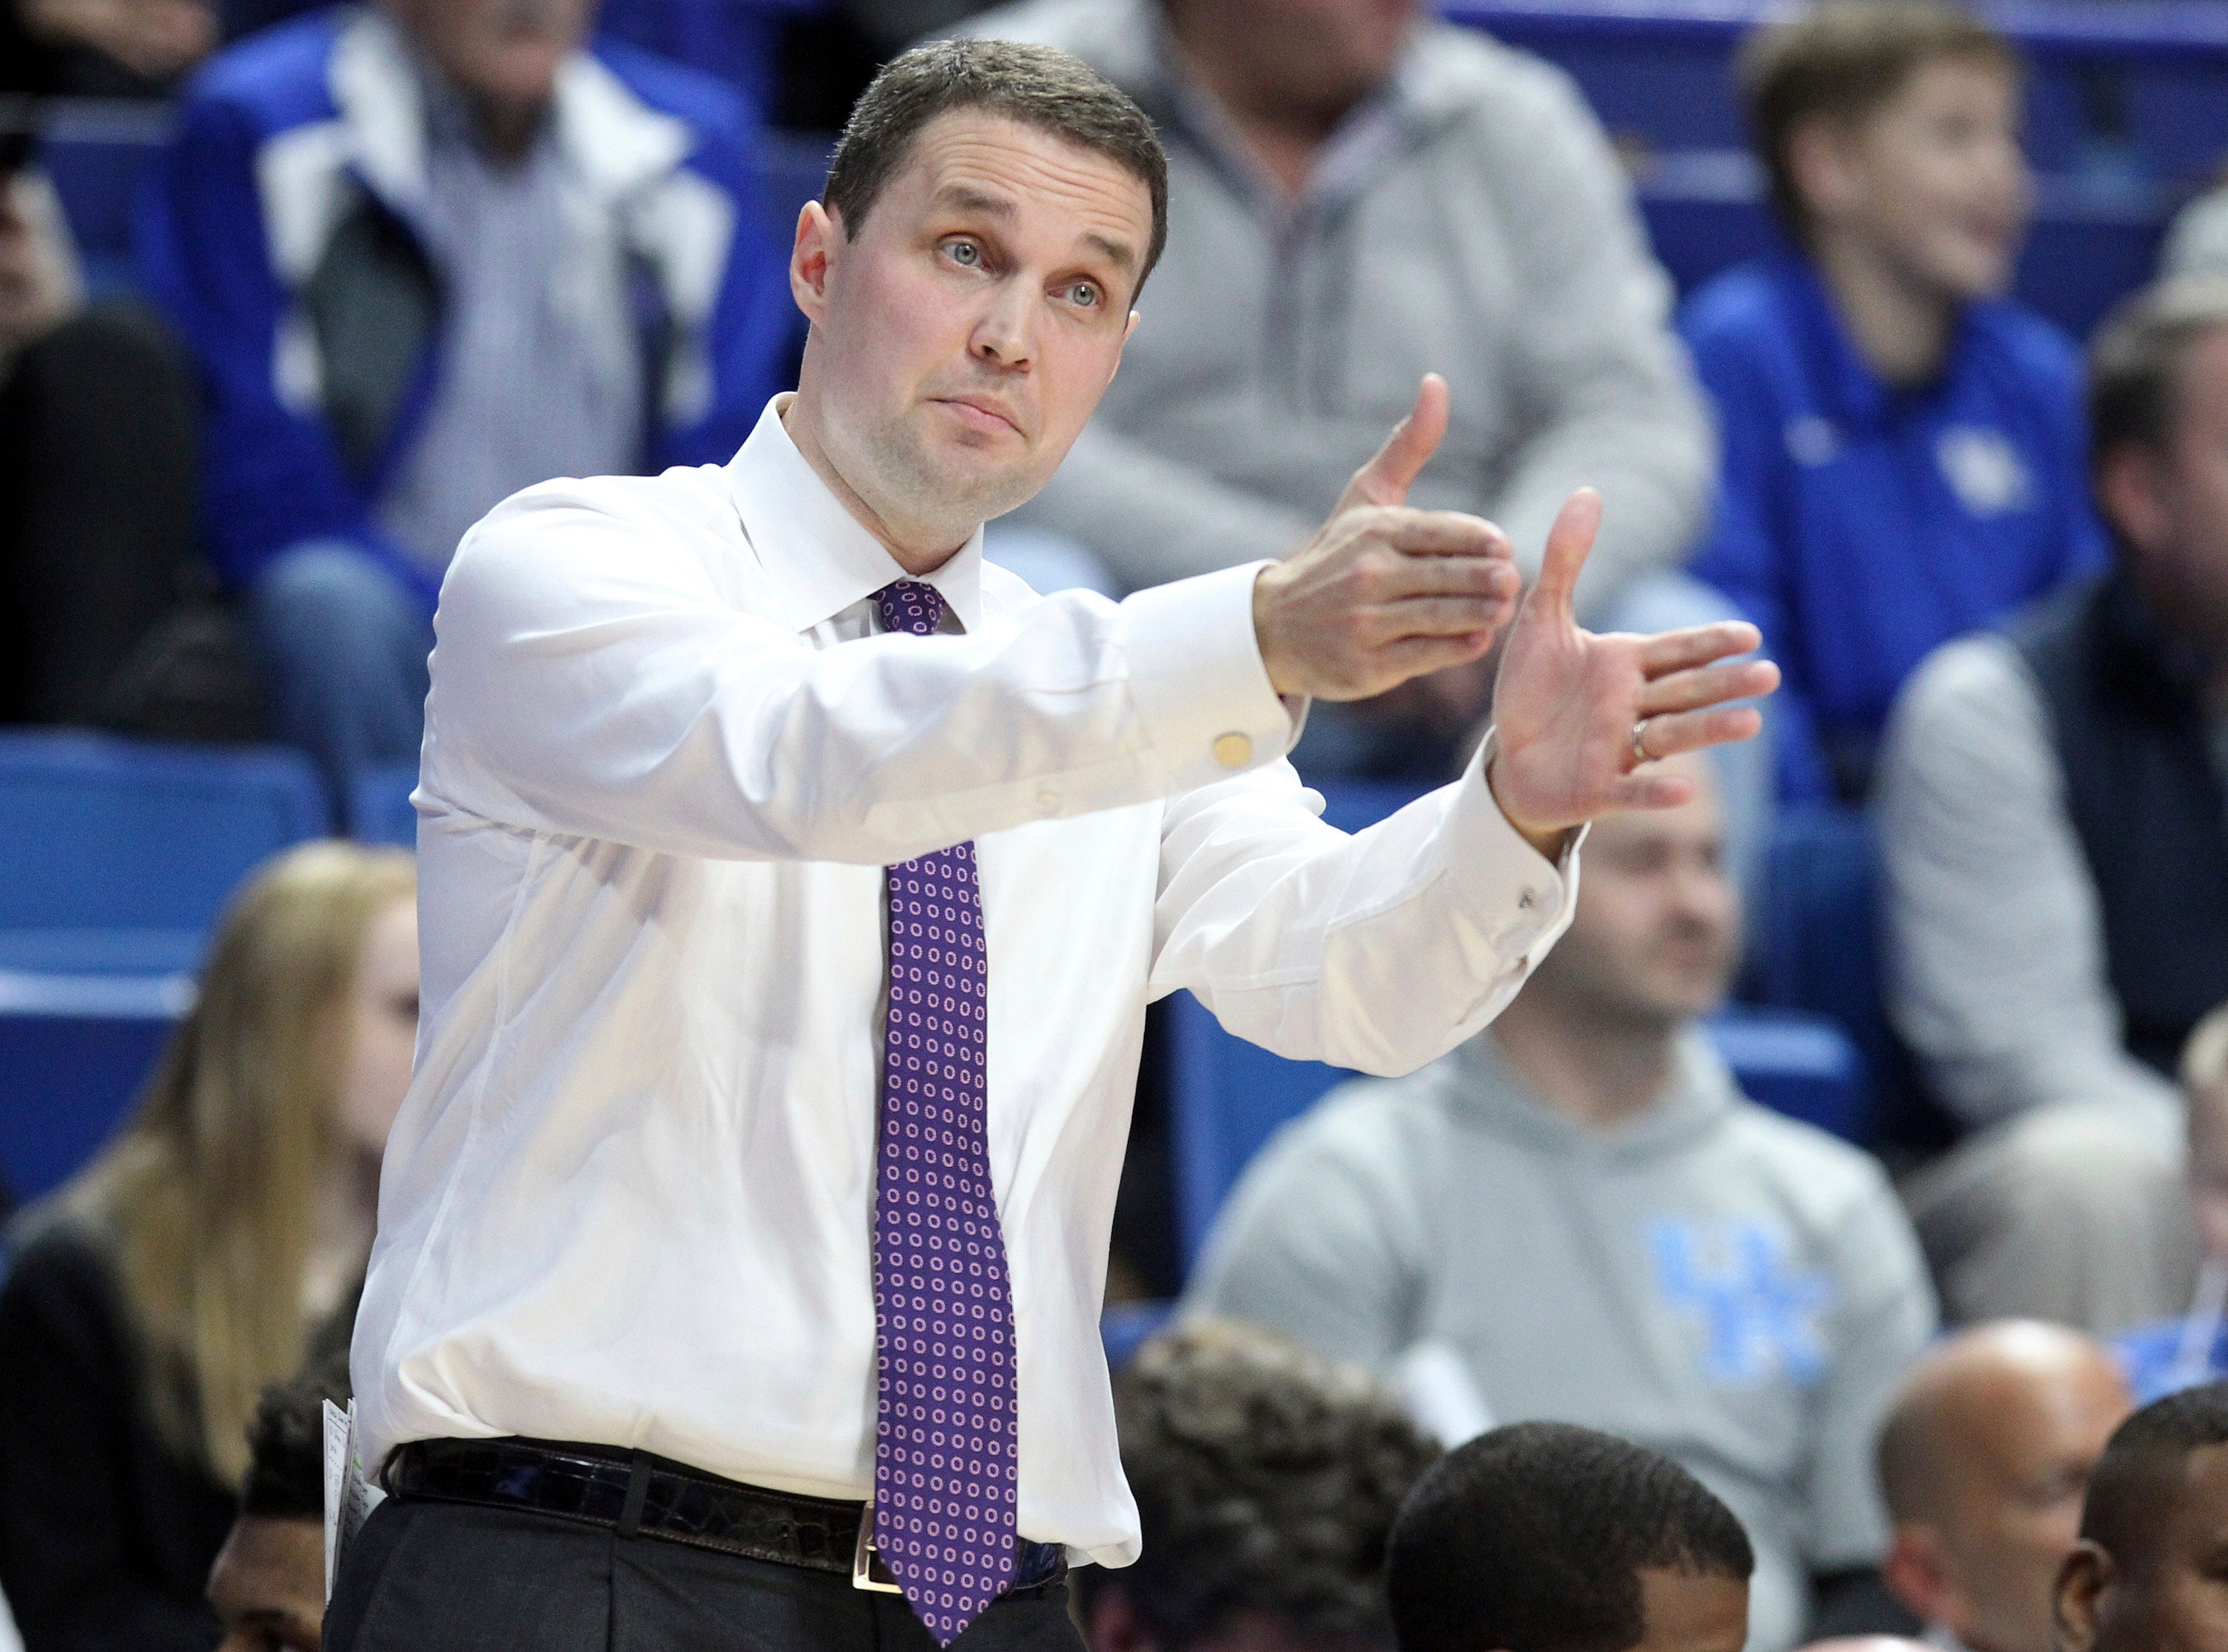 Opinion: LSU should skip the NCAA tournament and fire Will Wade after FBI wiretap report